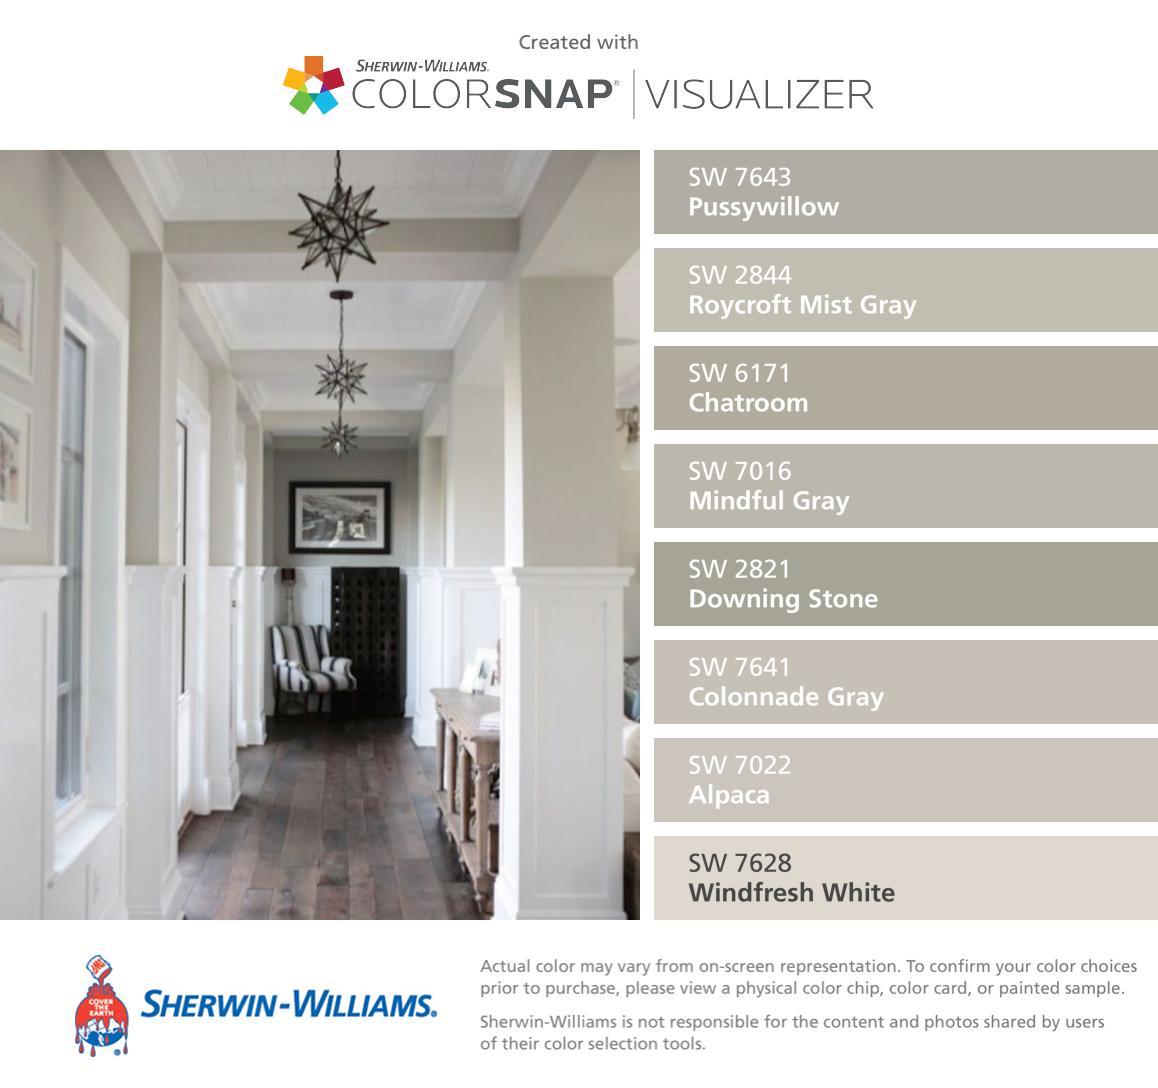 Sherwin williams popular greys - I Found These Colors With Colorsnap Visualizer For Iphone By Sherwin Williams Pussywillow